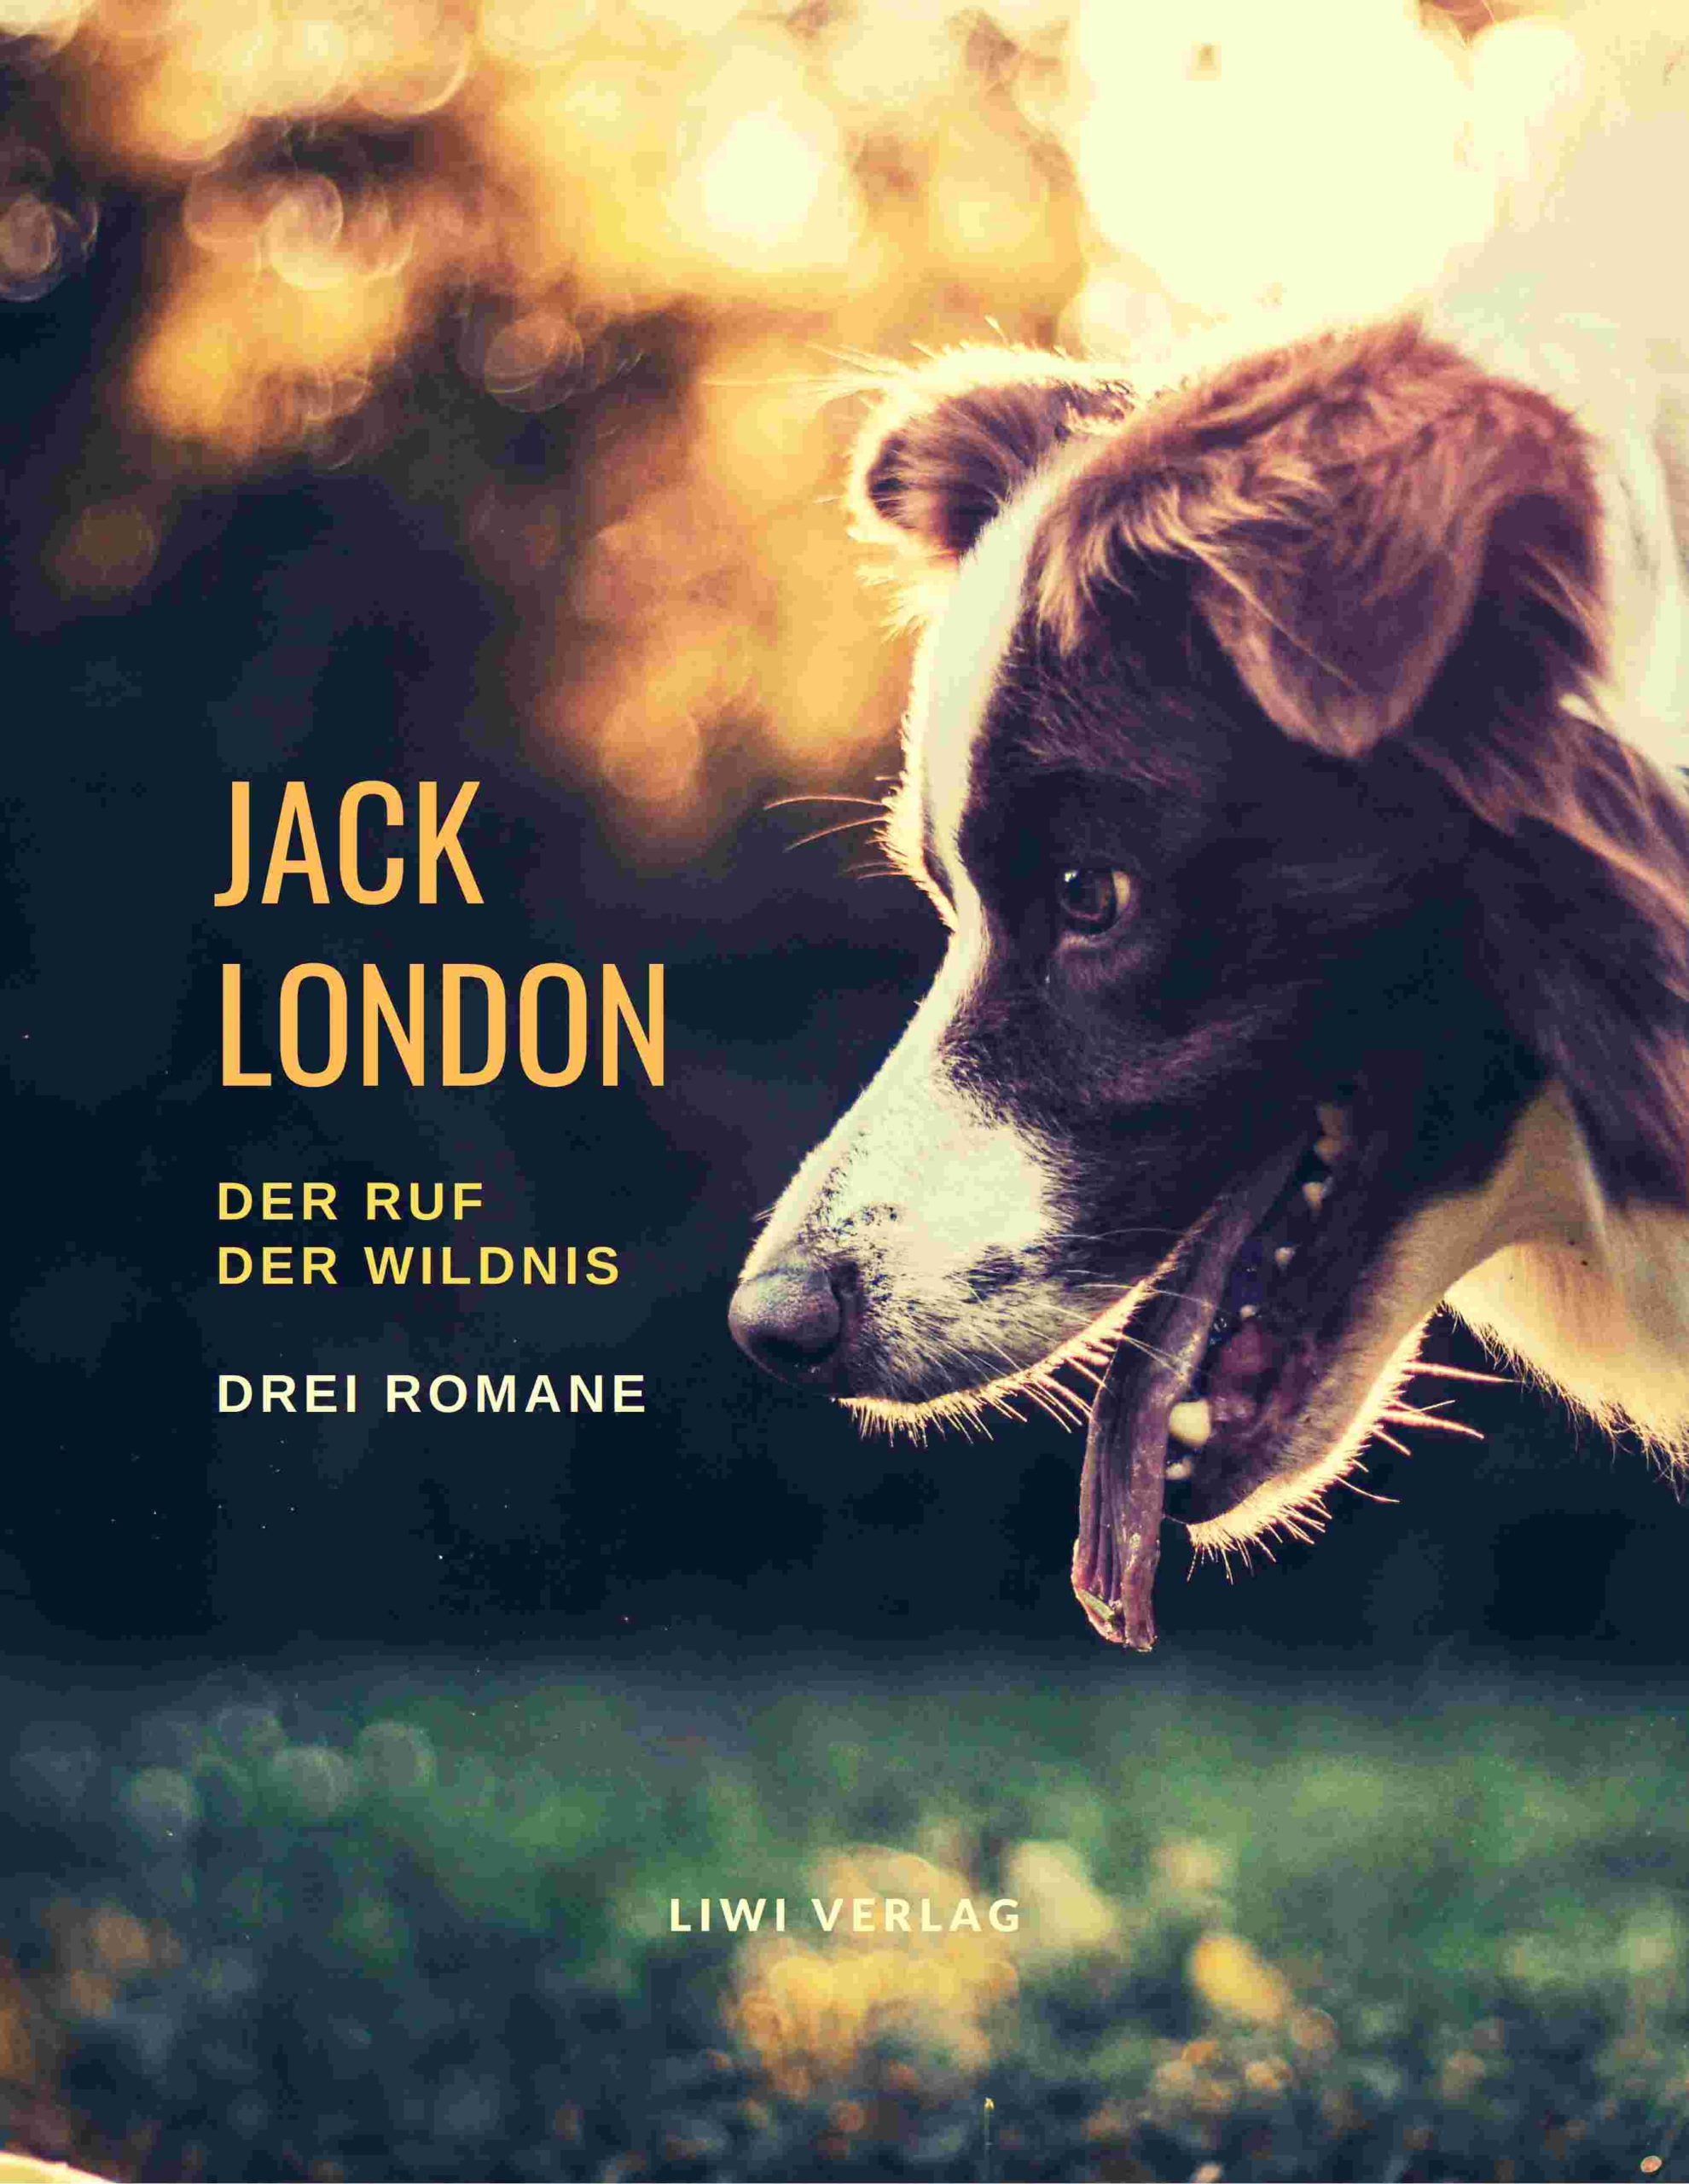 Jack London - Der Ruf der Wildnis – buch